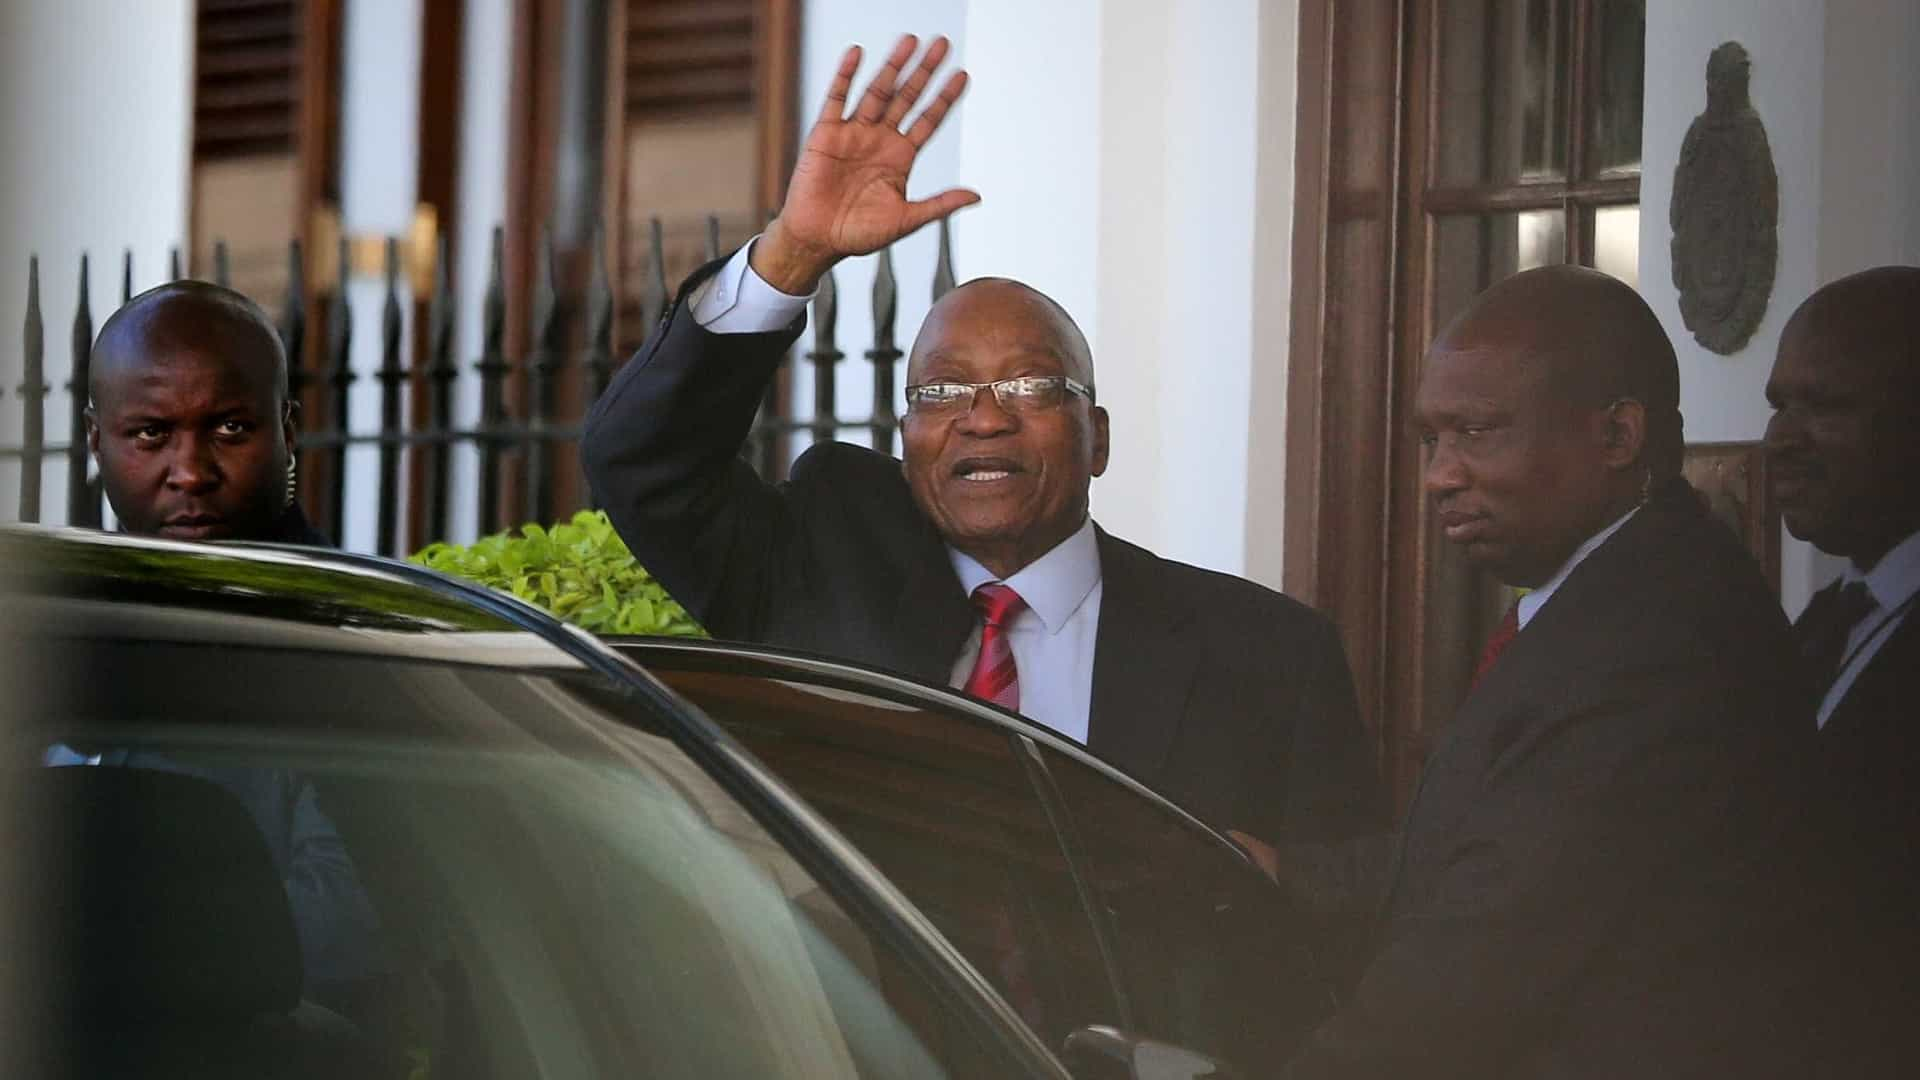 ANC exige renúncia do presidente de África do Sul Jacob Zuma